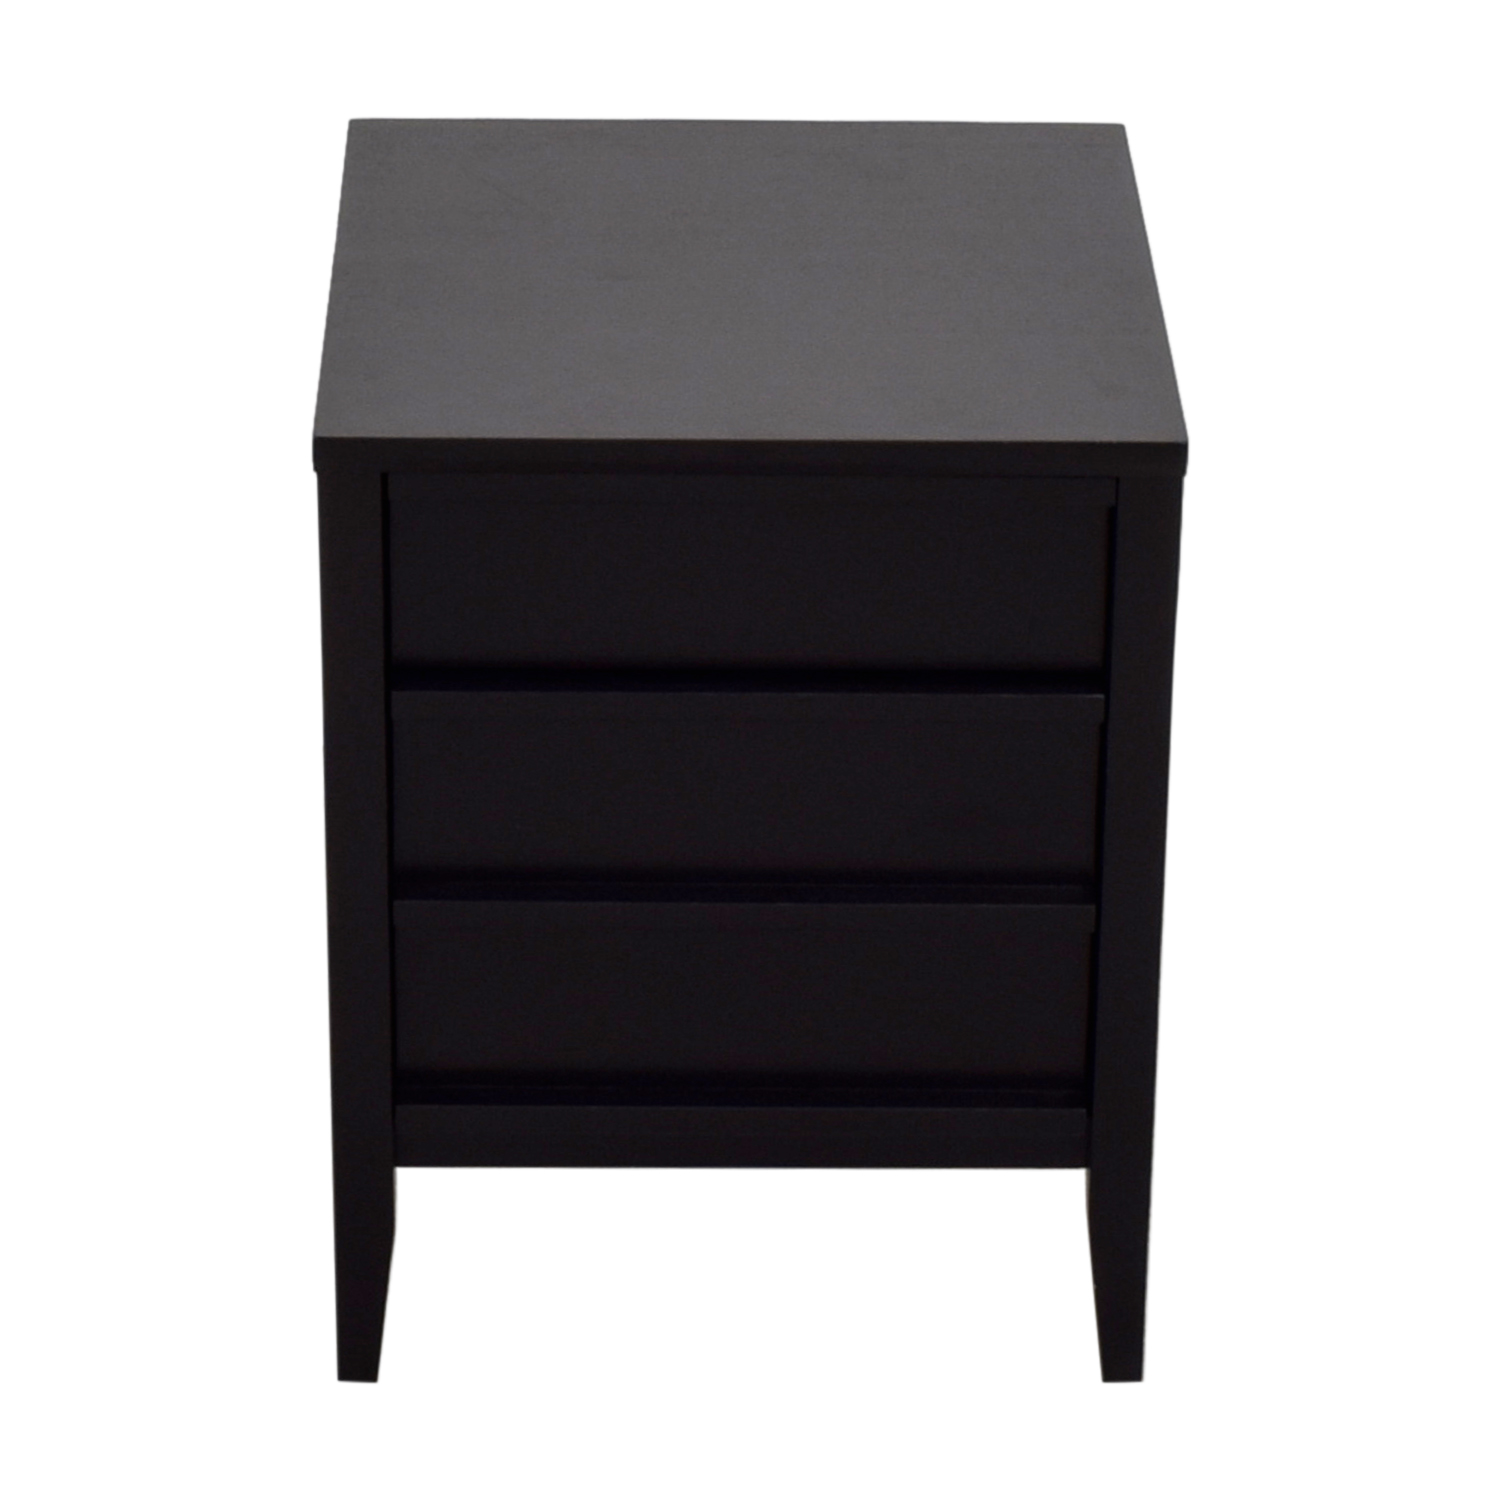 shop Crate & Barrel Two-Drawer File Cabinet Crate & Barrel